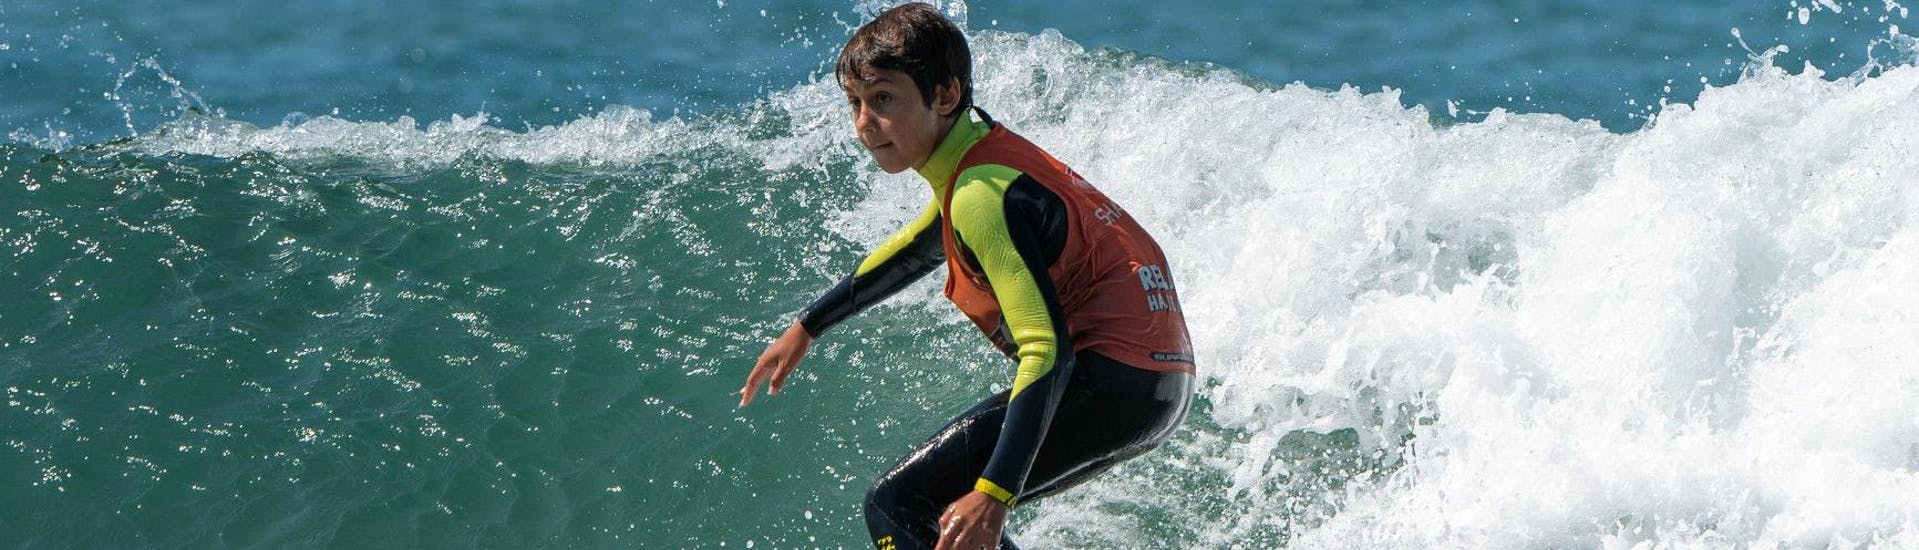 Under the guidance of an experienced surf instructor from Surfaventura, a boy is fully focused on riding his first wave during the surfing lessons on Matosinhos Beach.